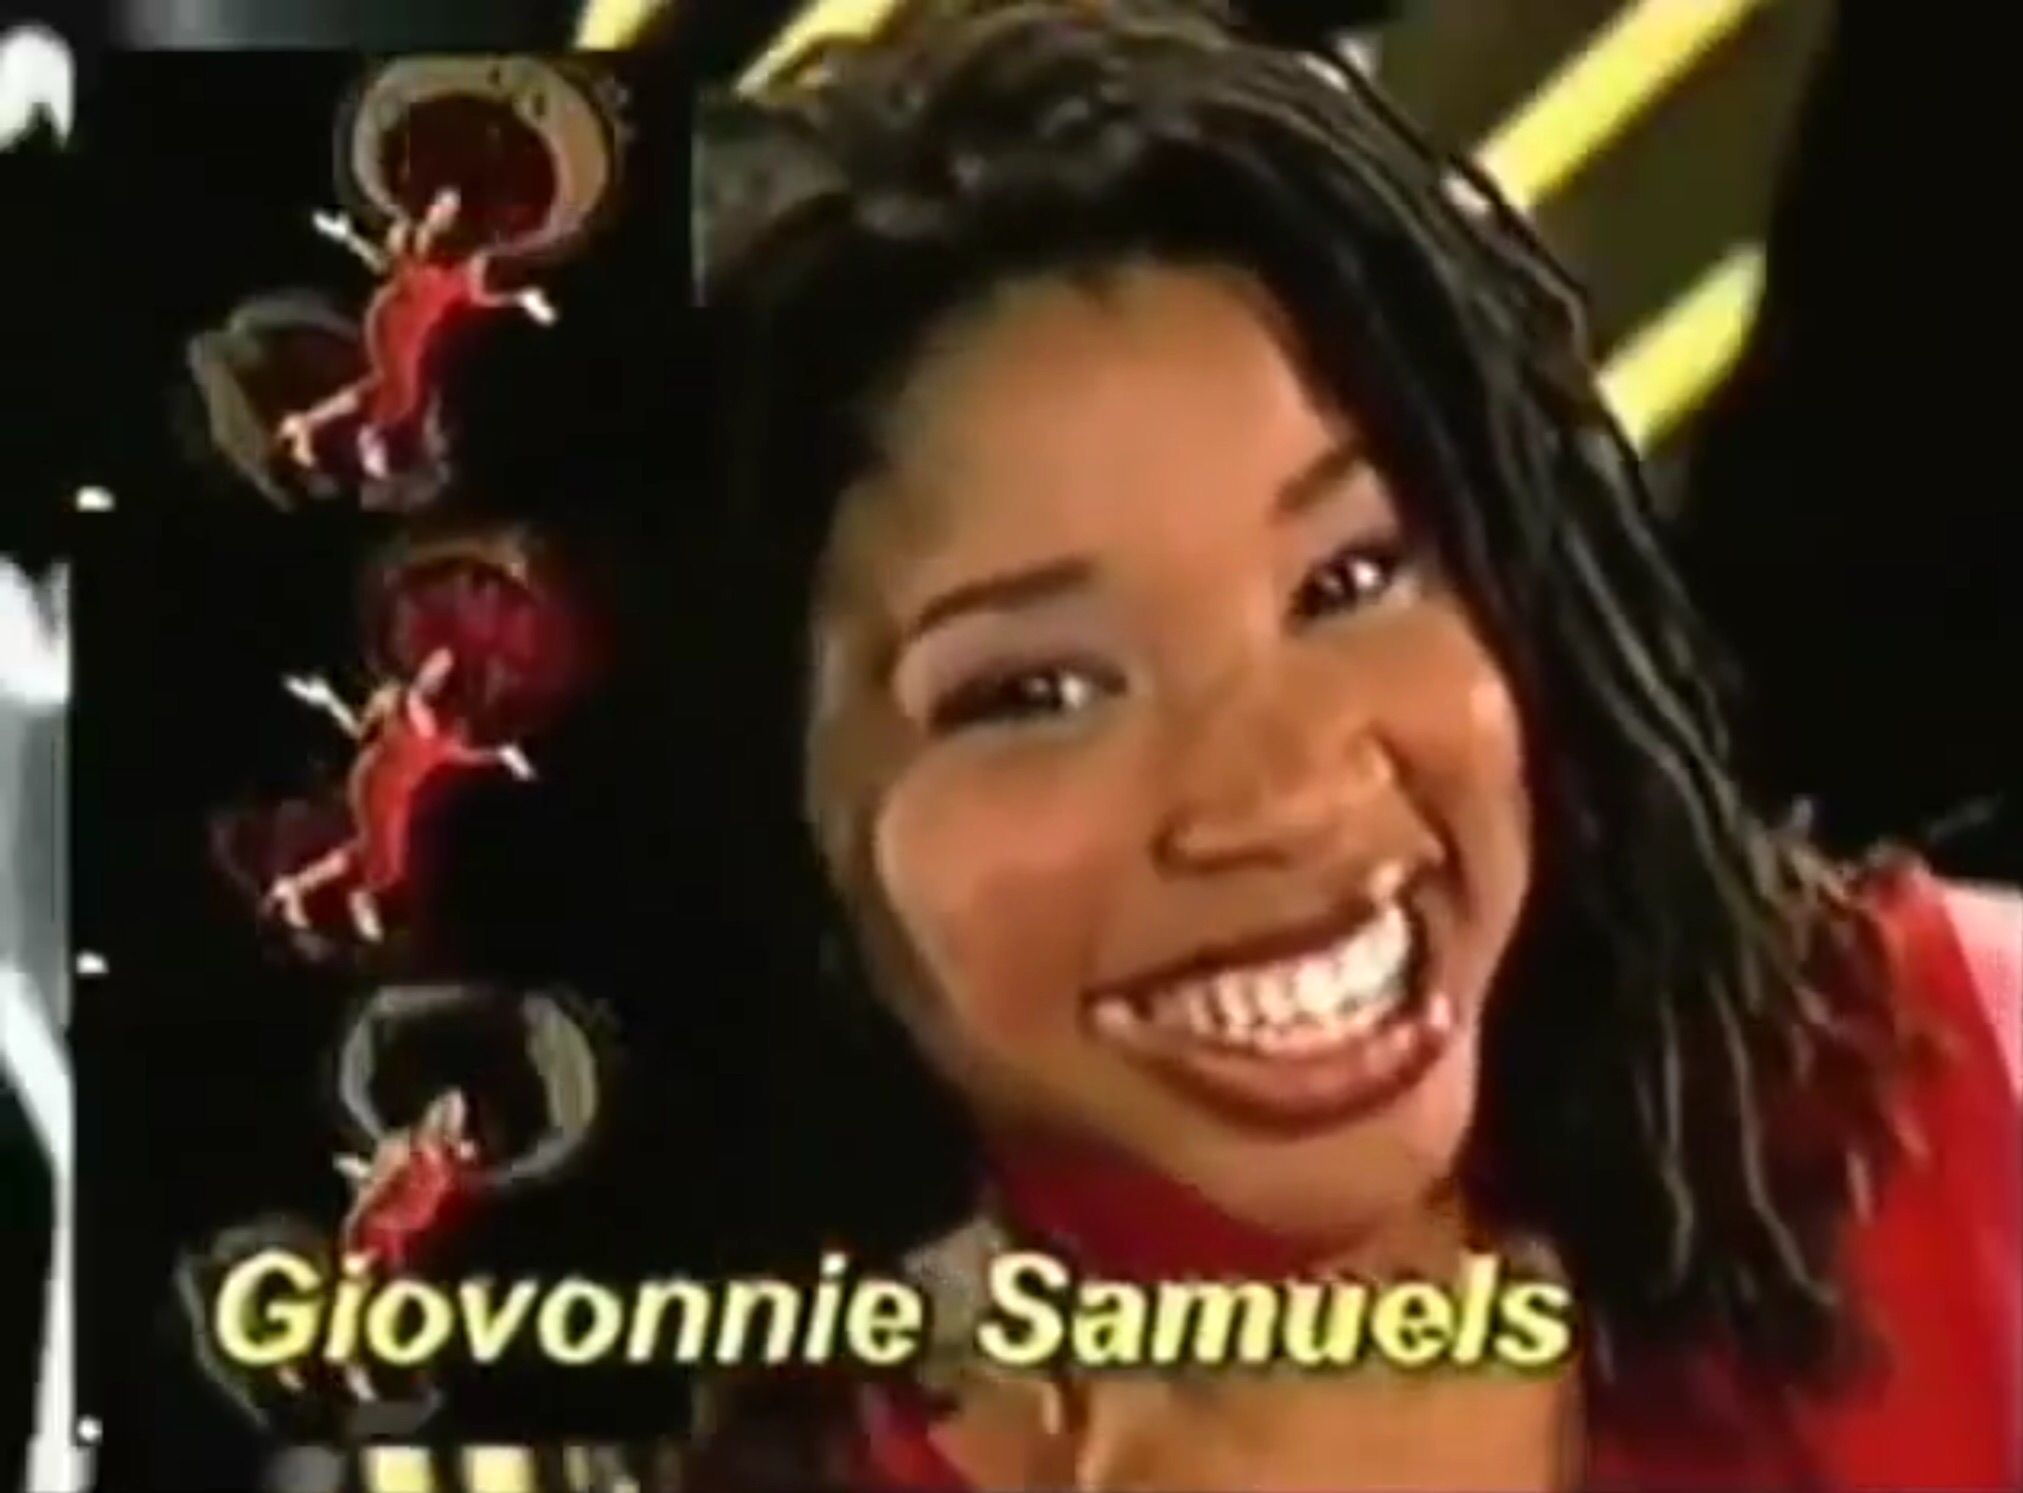 giovonnie samuels in zack and cody